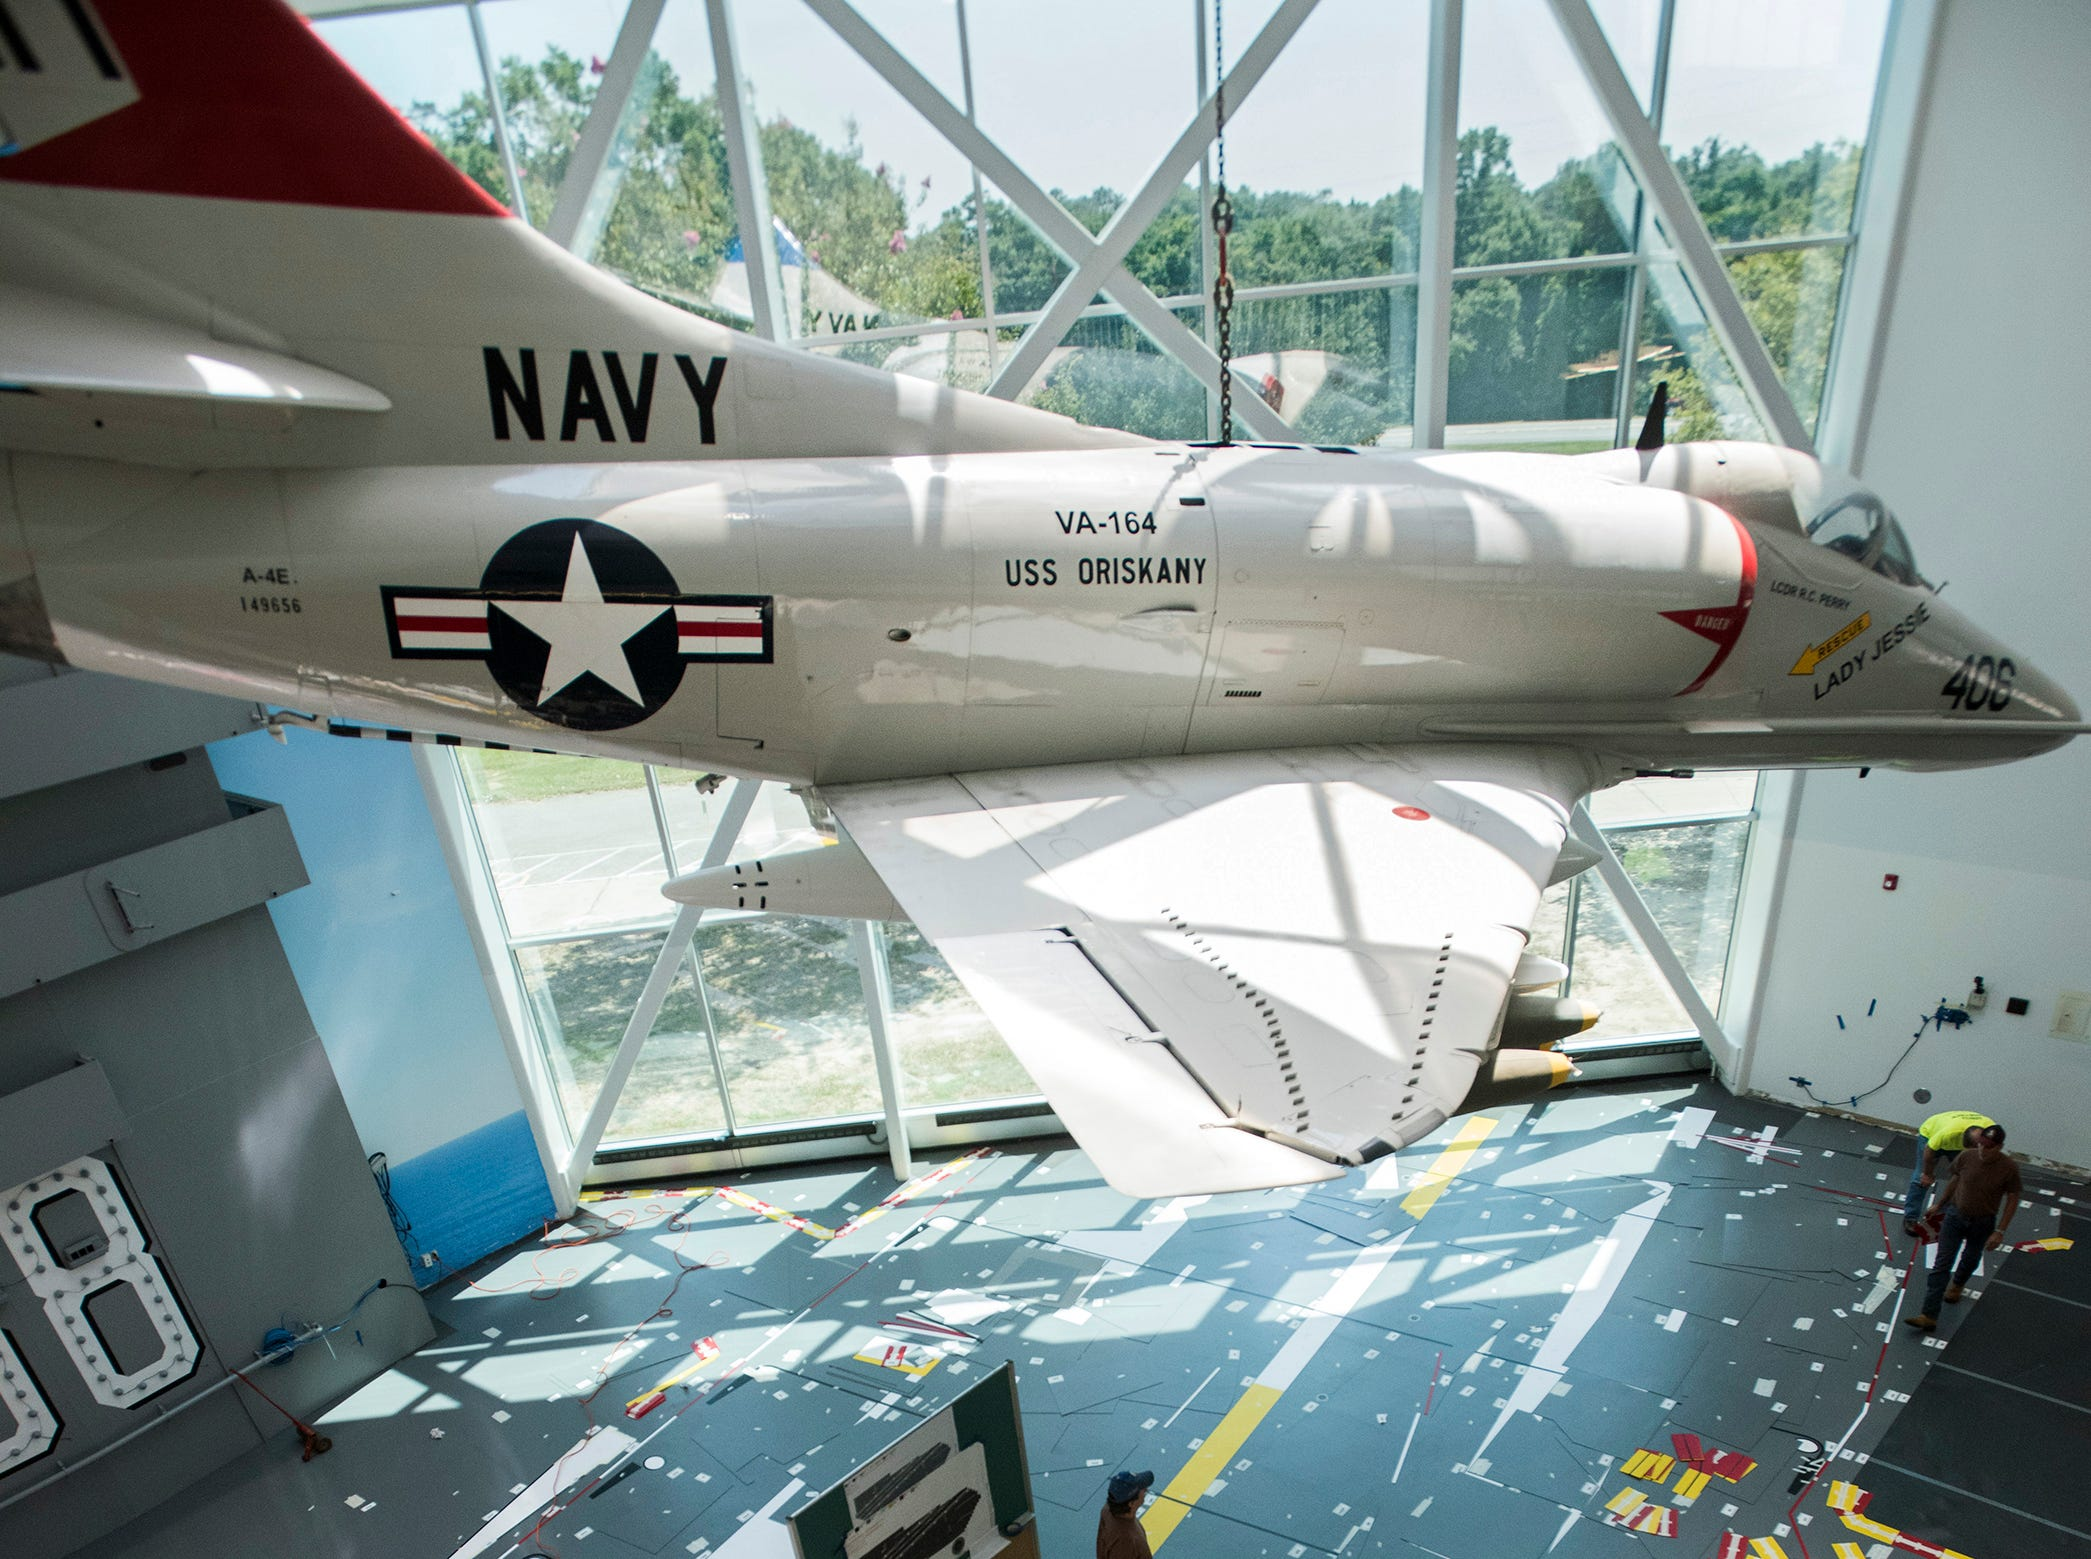 Deck of aircraft carrier USS Nimitz will greet visitors at National Naval Aviation Museum